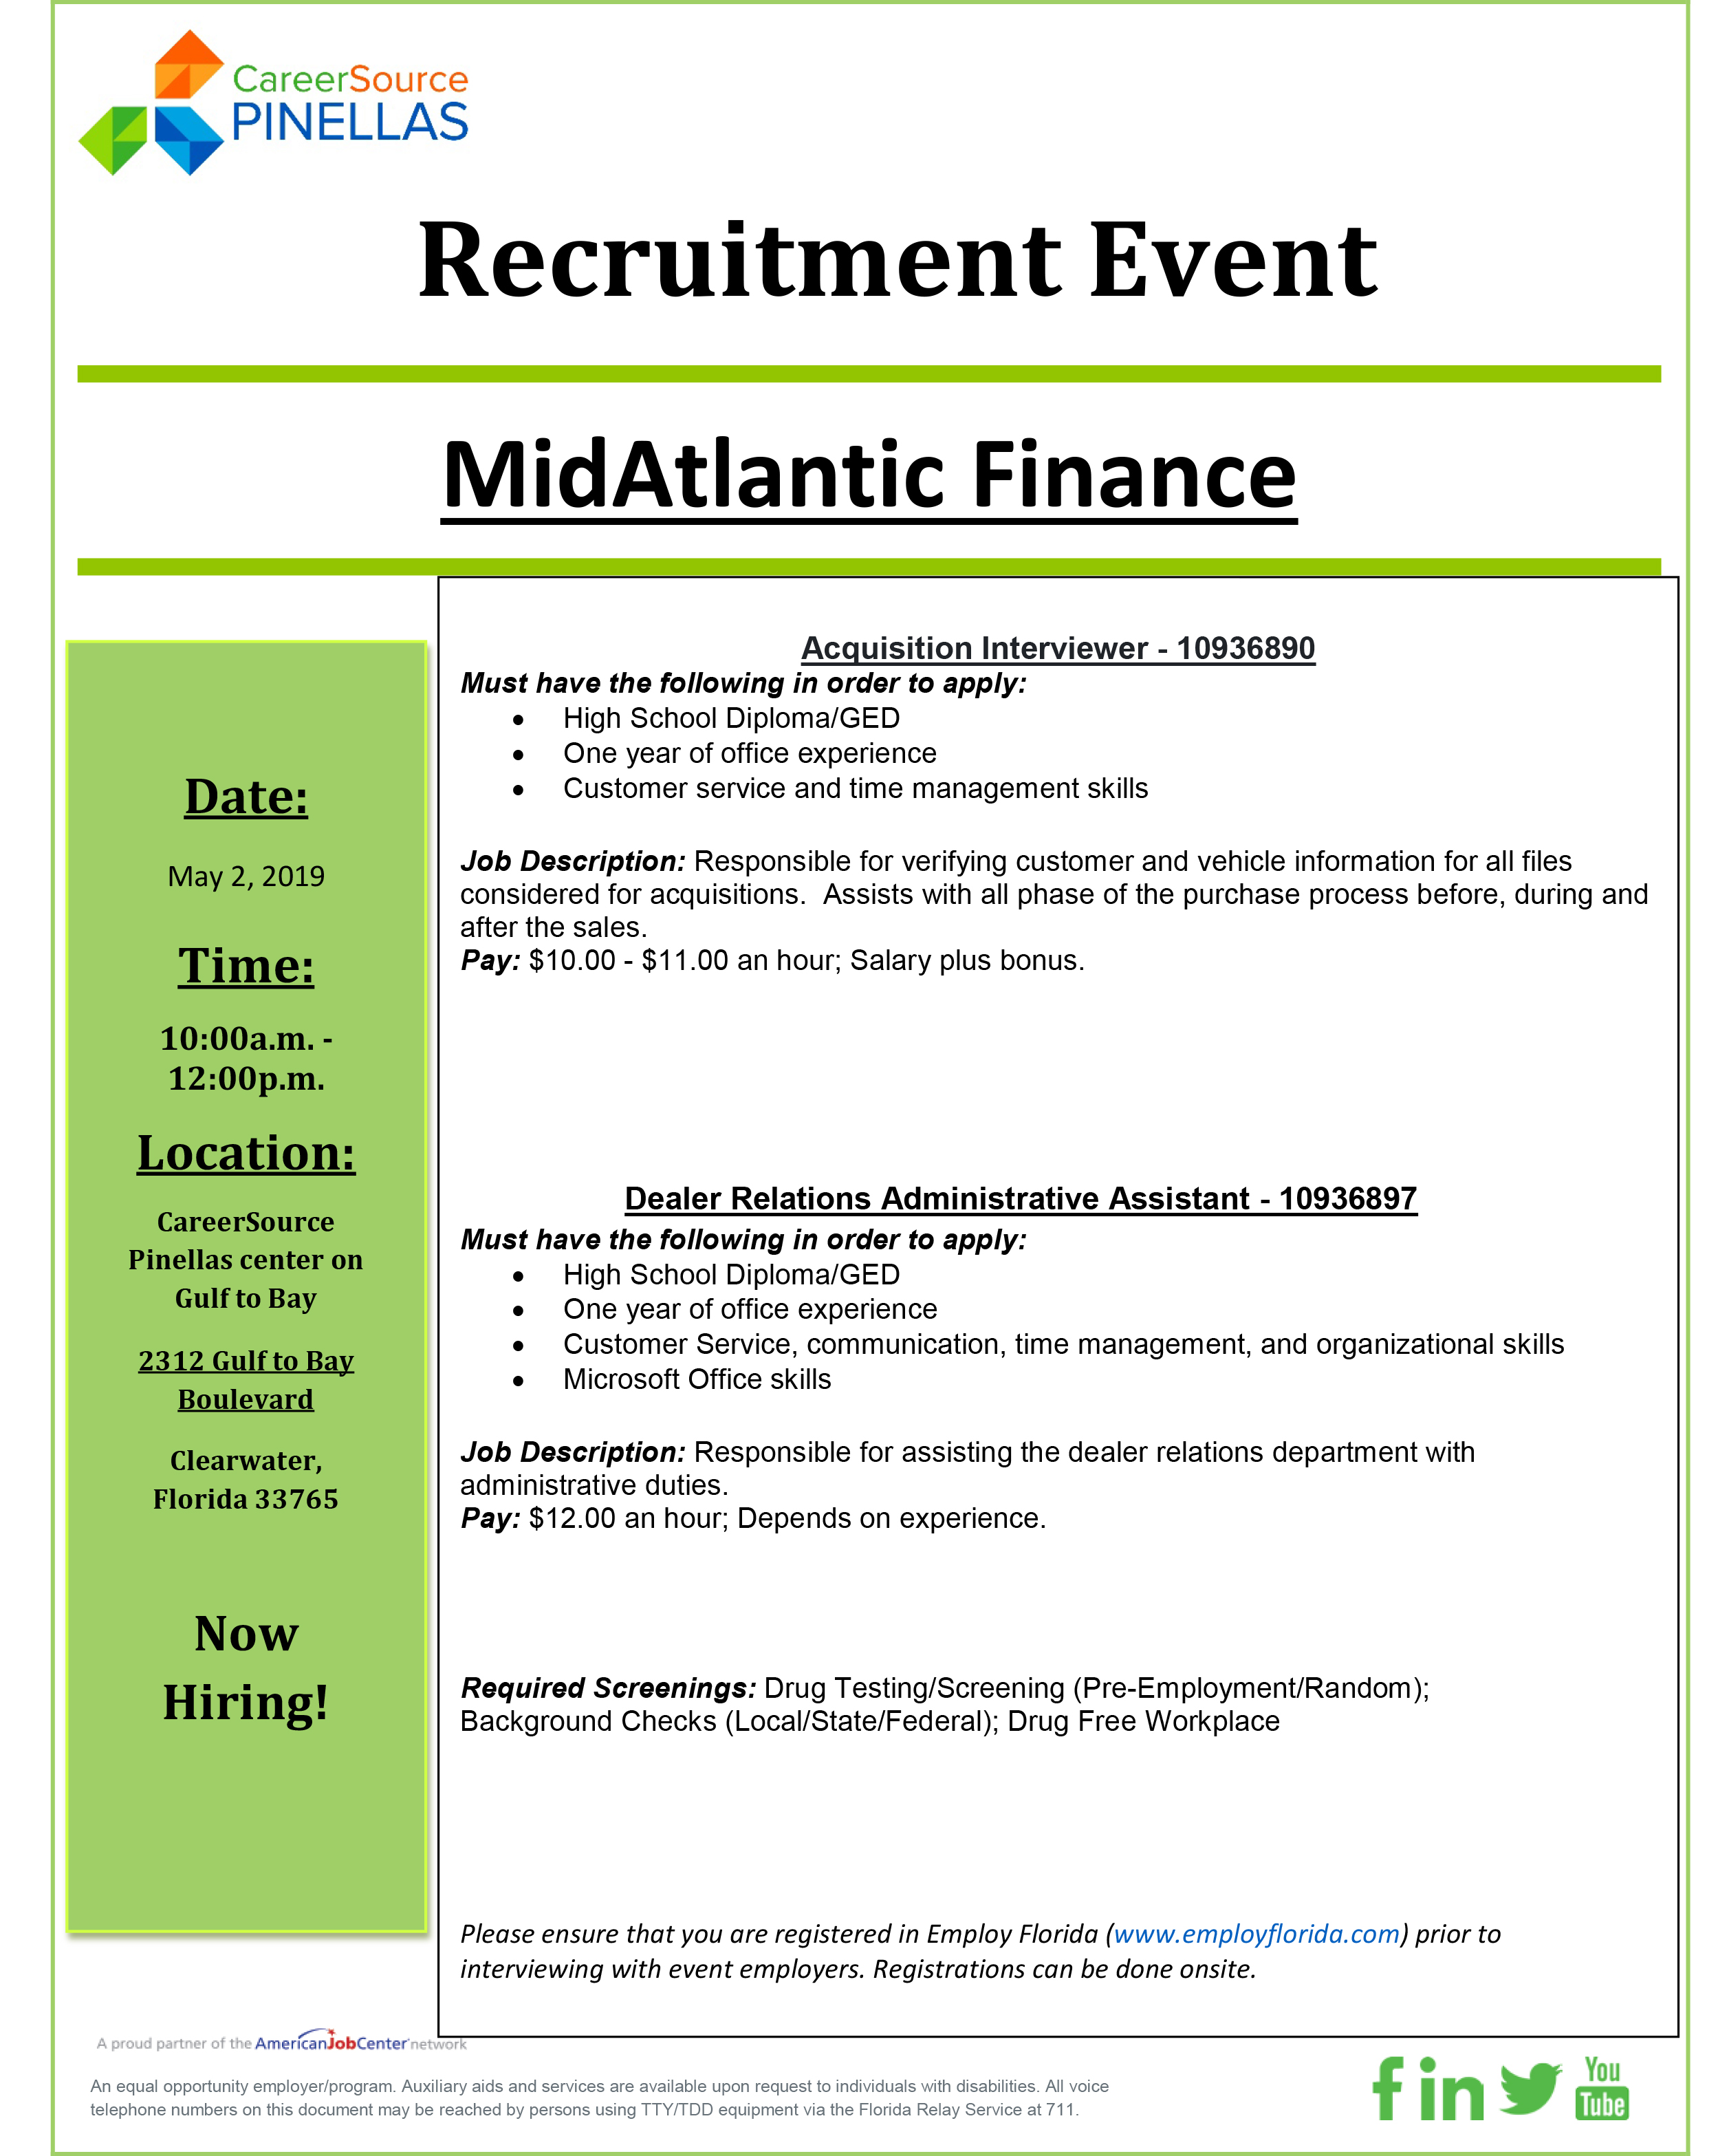 MidAtlantic Finance On-Site 5.2.2019 -3.jpg